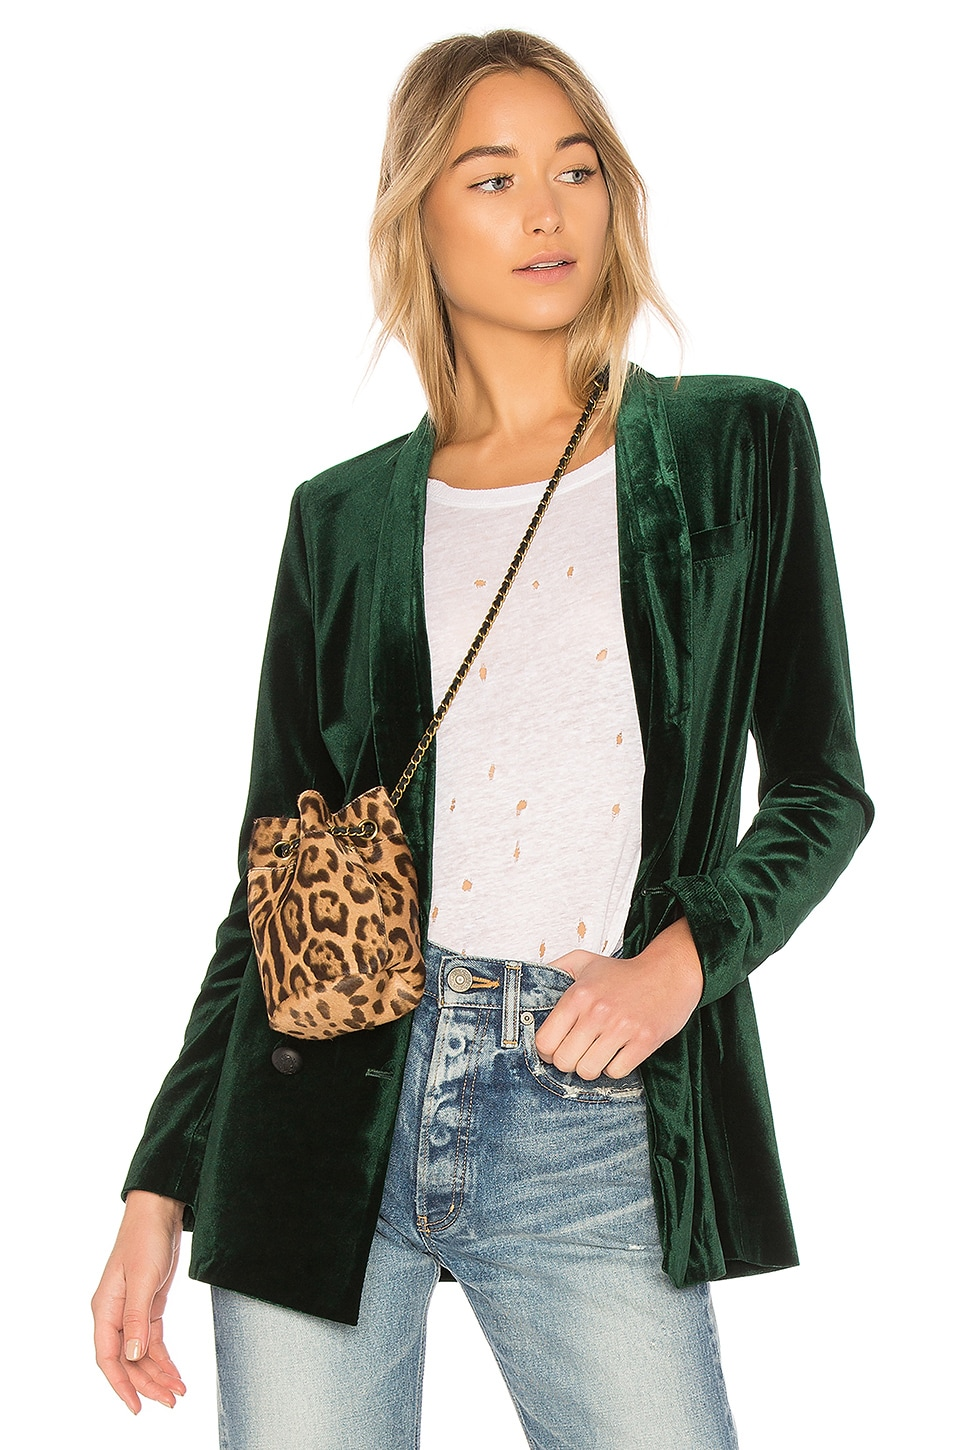 ON PARLE DE VOUS Dominante Jacket in Green